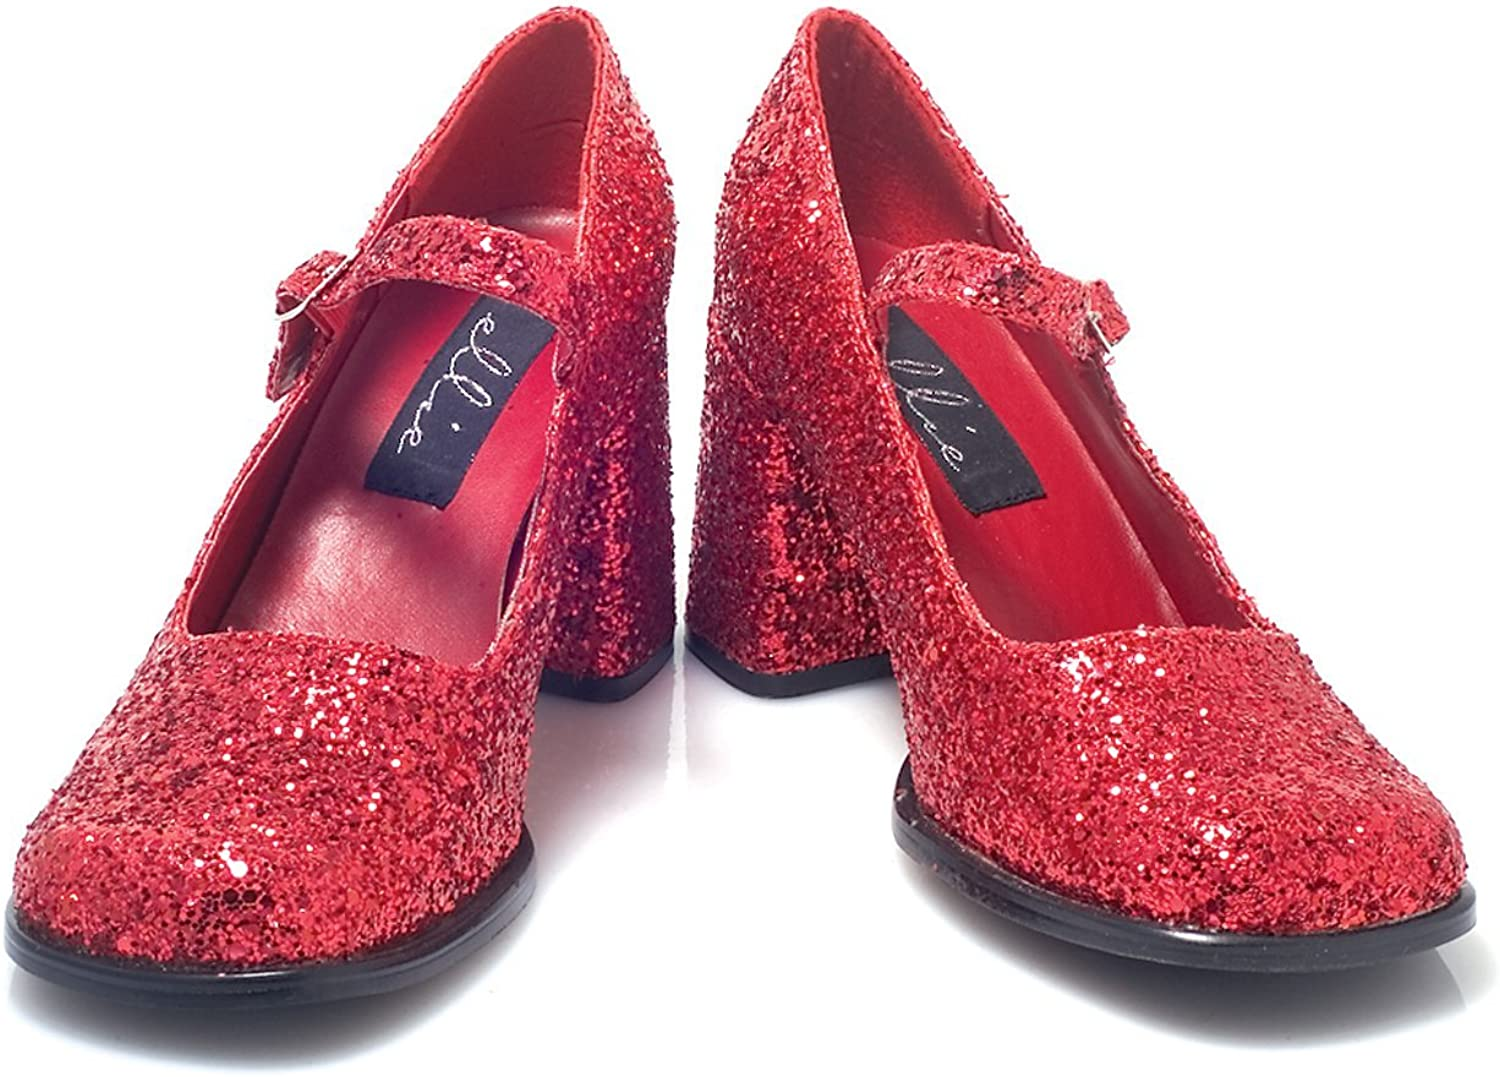 Eden G Red Costume shoes - Size 8